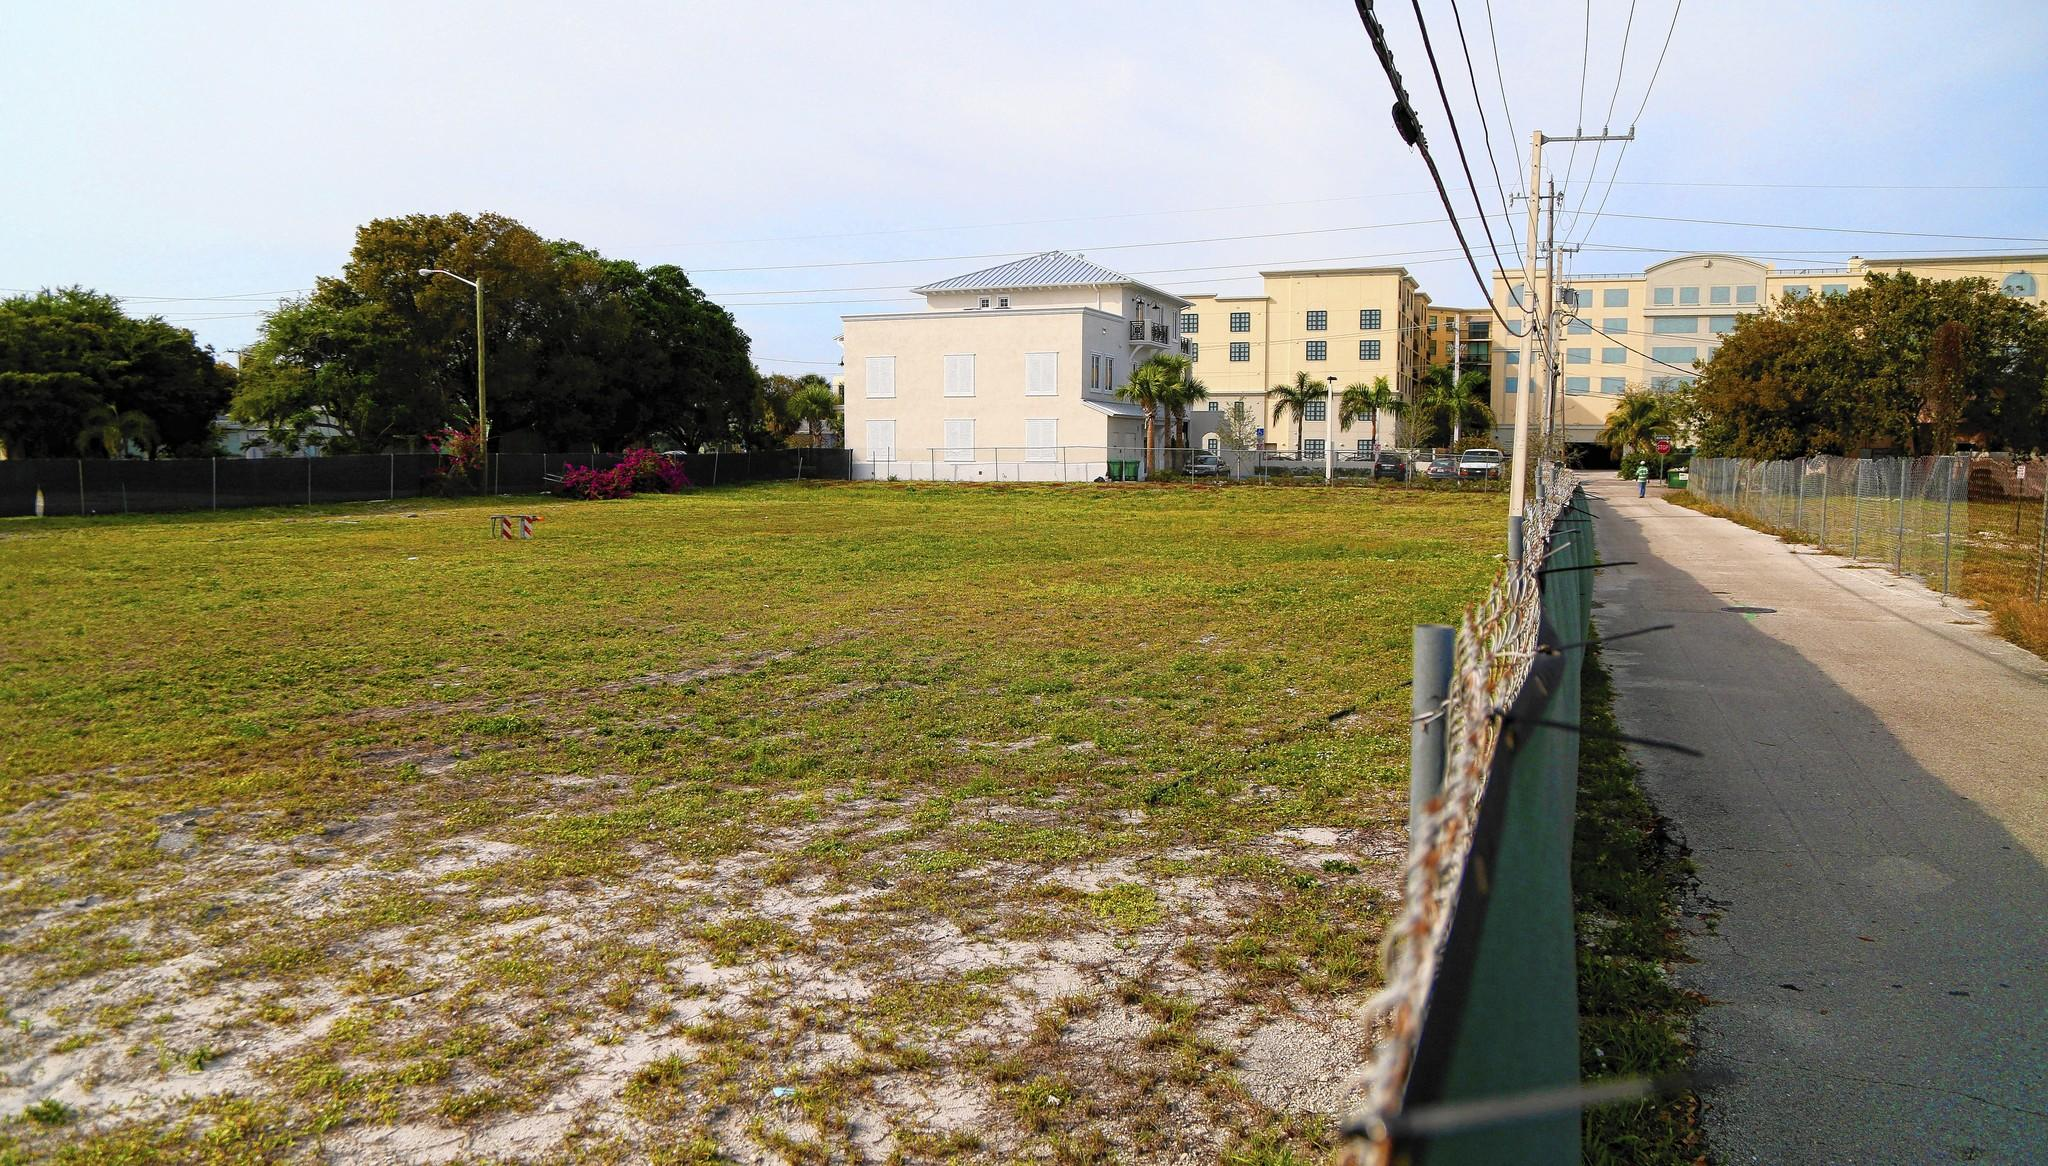 A vacant lot for proposed project site in Delray Beach. East side of SE 1st Avenue, south of SE 1st Street at 111 SE 1st Avenue. Development in Delray is taking a shift off the main drag of Atlantic Avenue and into the side streets.